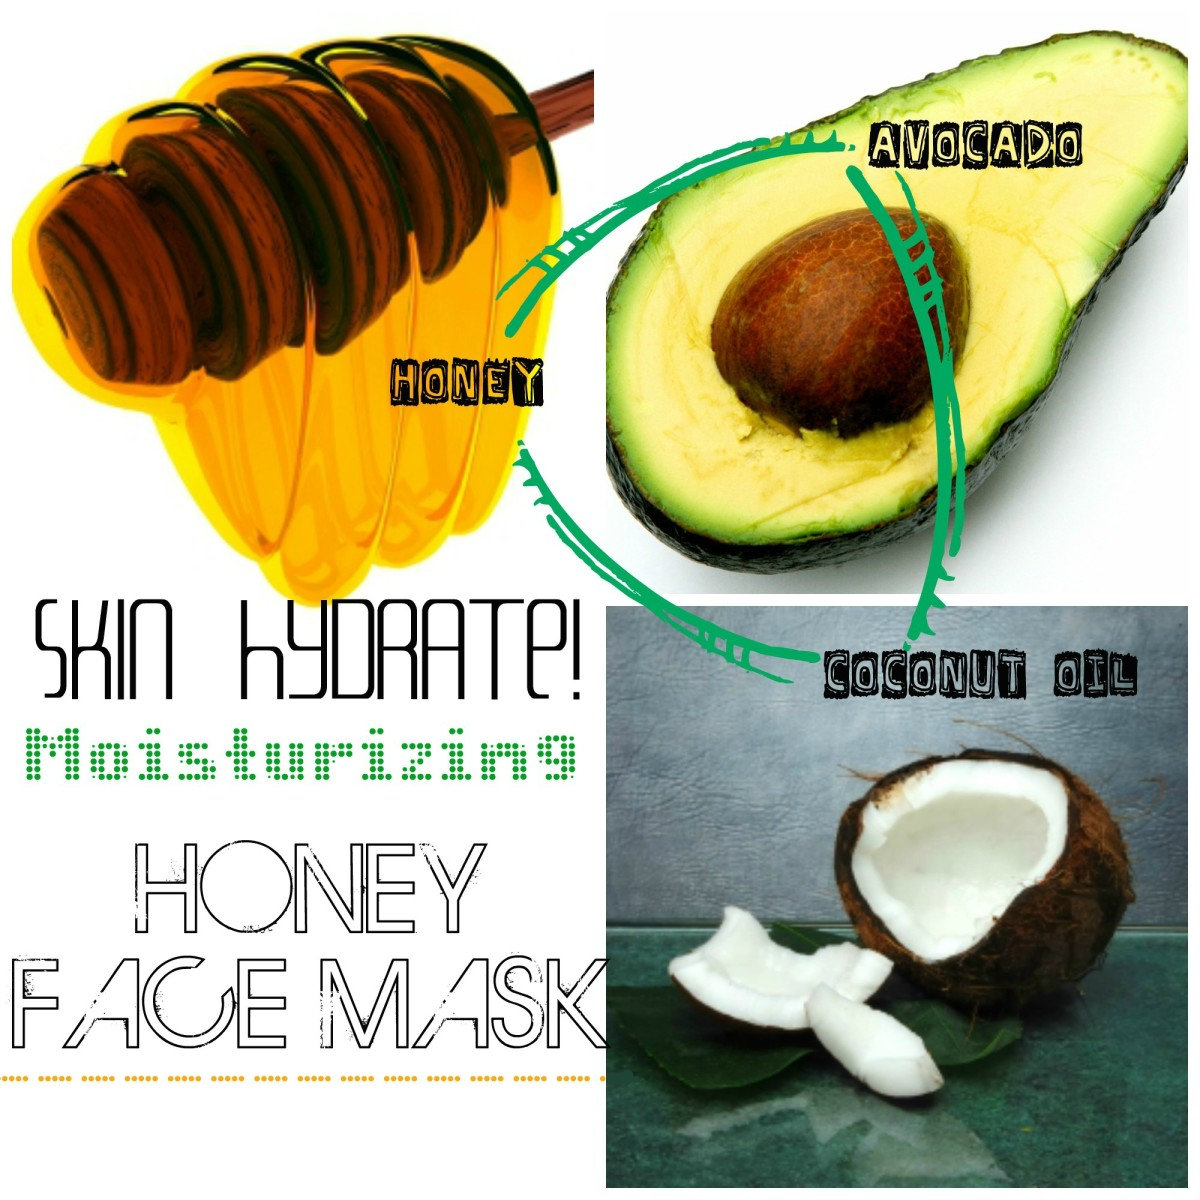 Suffering from dry or aging skin? This honey face mask is sure to plump up and moisturize your skin cells and leave you looking fresher and younger than ever before.